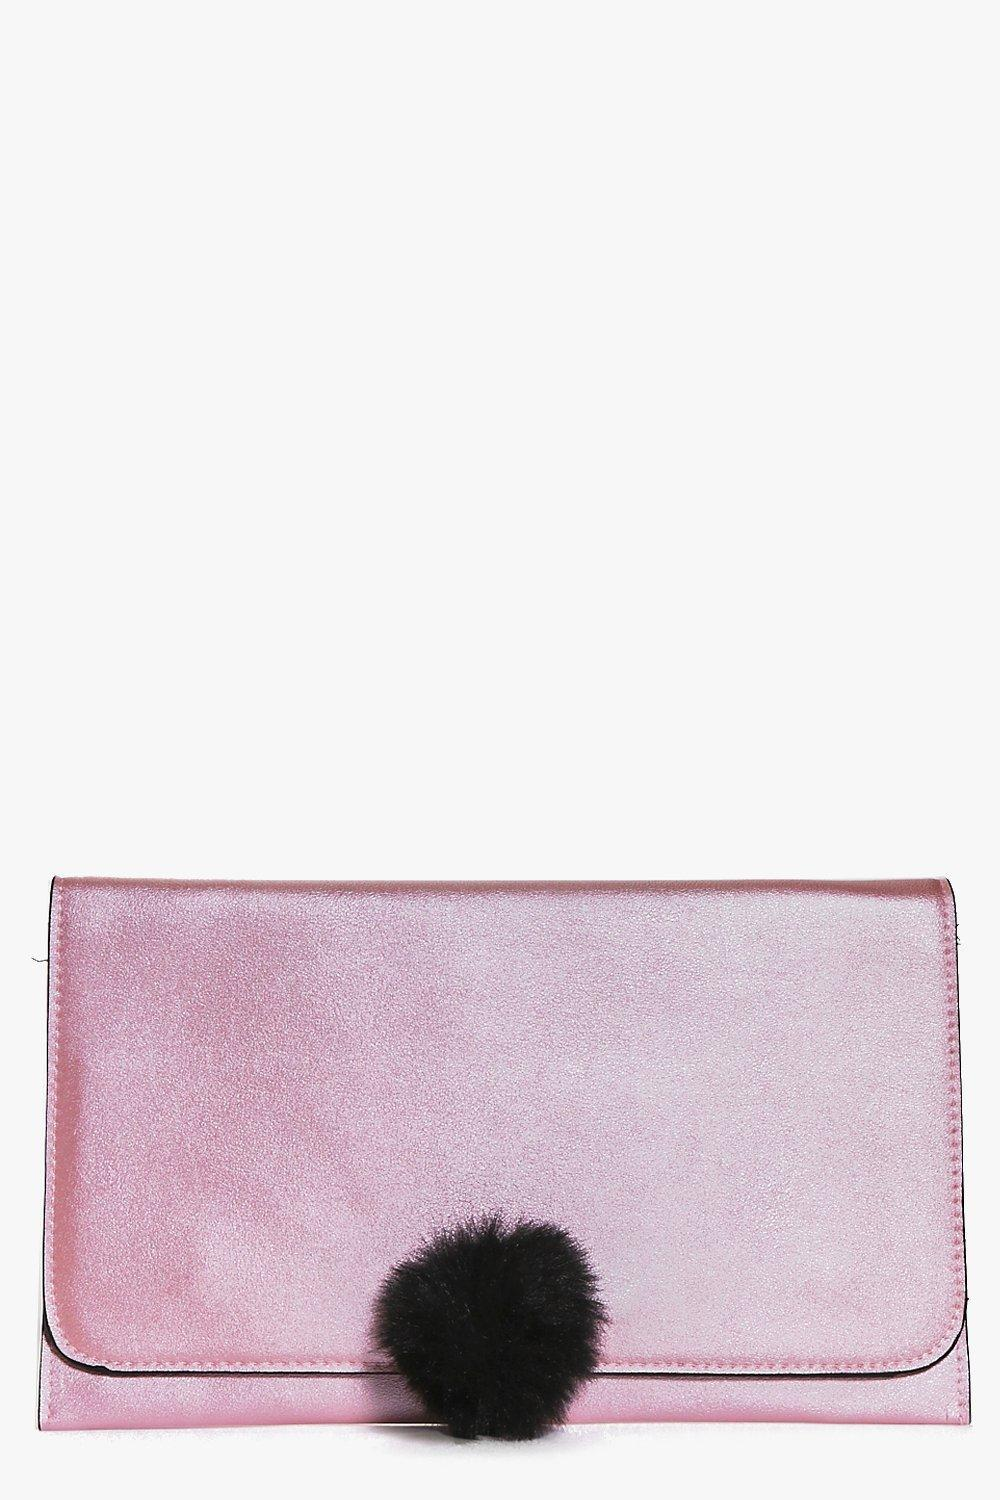 Pom Detail Clutch Bag Pink - predominant colour: blush; occasions: evening; type of pattern: standard; style: clutch; length: hand carry; size: standard; material: faux leather; pattern: plain; finish: metallic; embellishment: pompom; season: a/w 2016; wardrobe: event